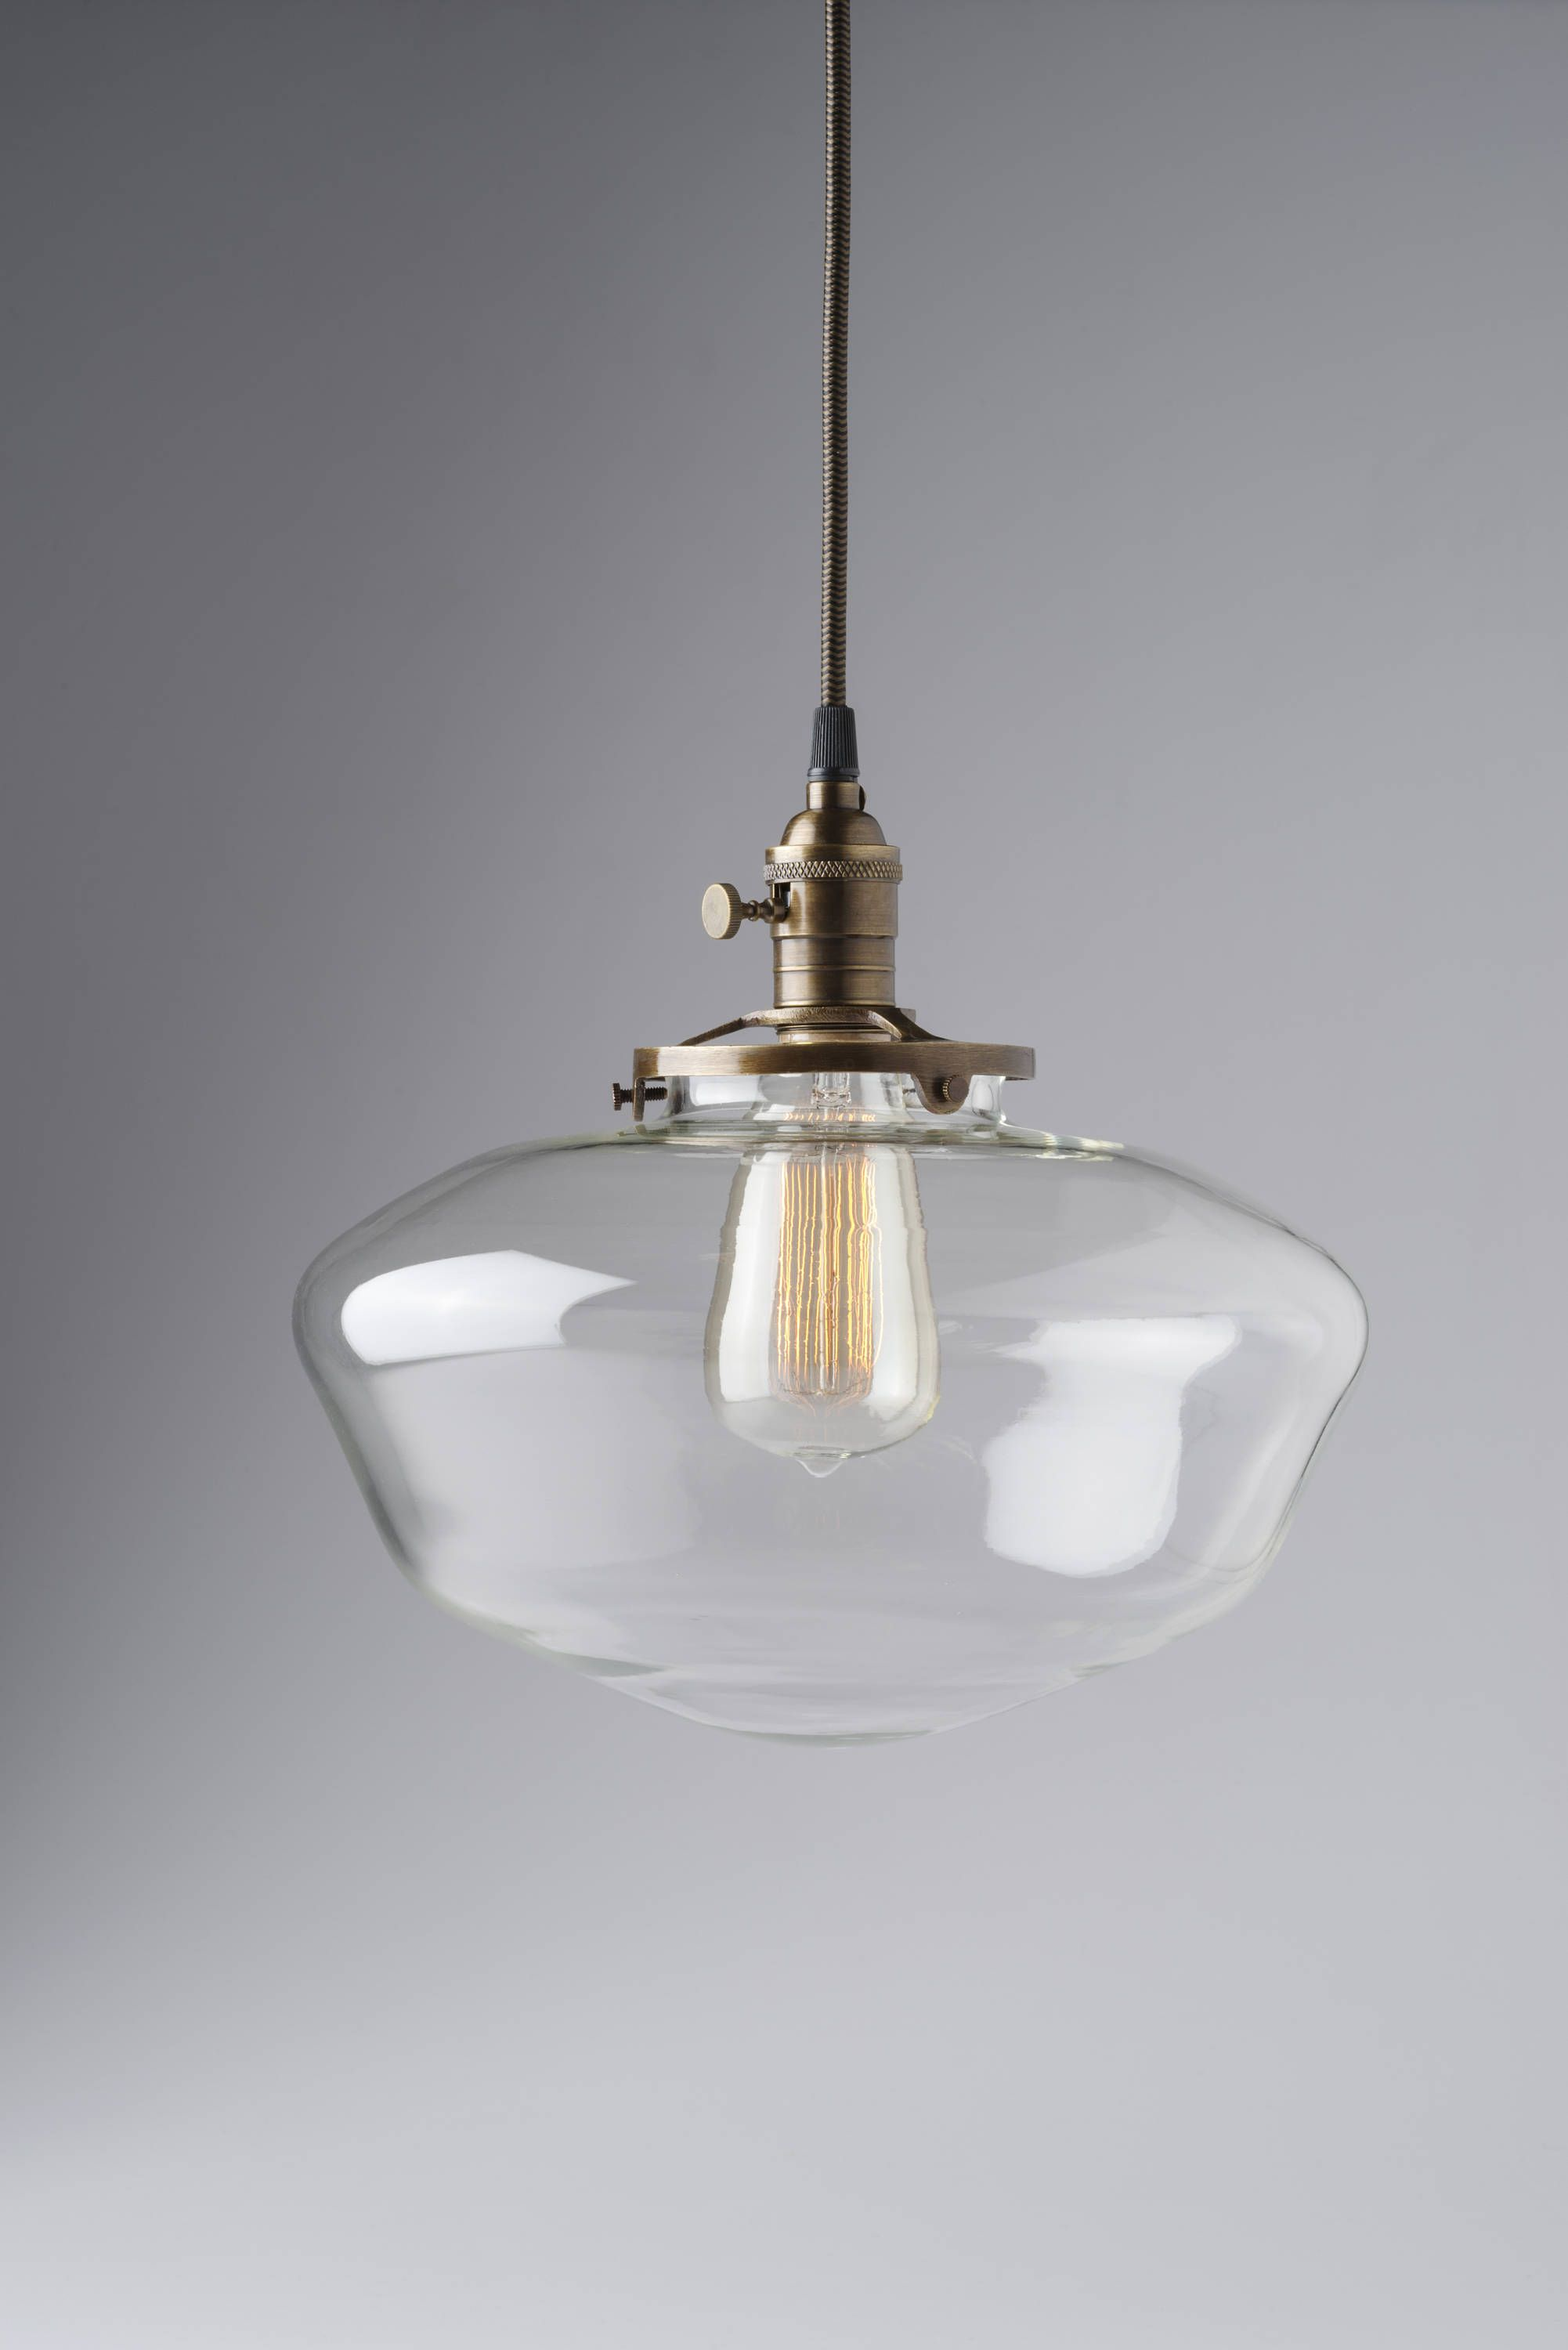 Schoolhouse Lighting With 12 Clear Schoolhouse Glass Etsy Glass Shade Pendant Light Pendant Light Clear Pendant Light